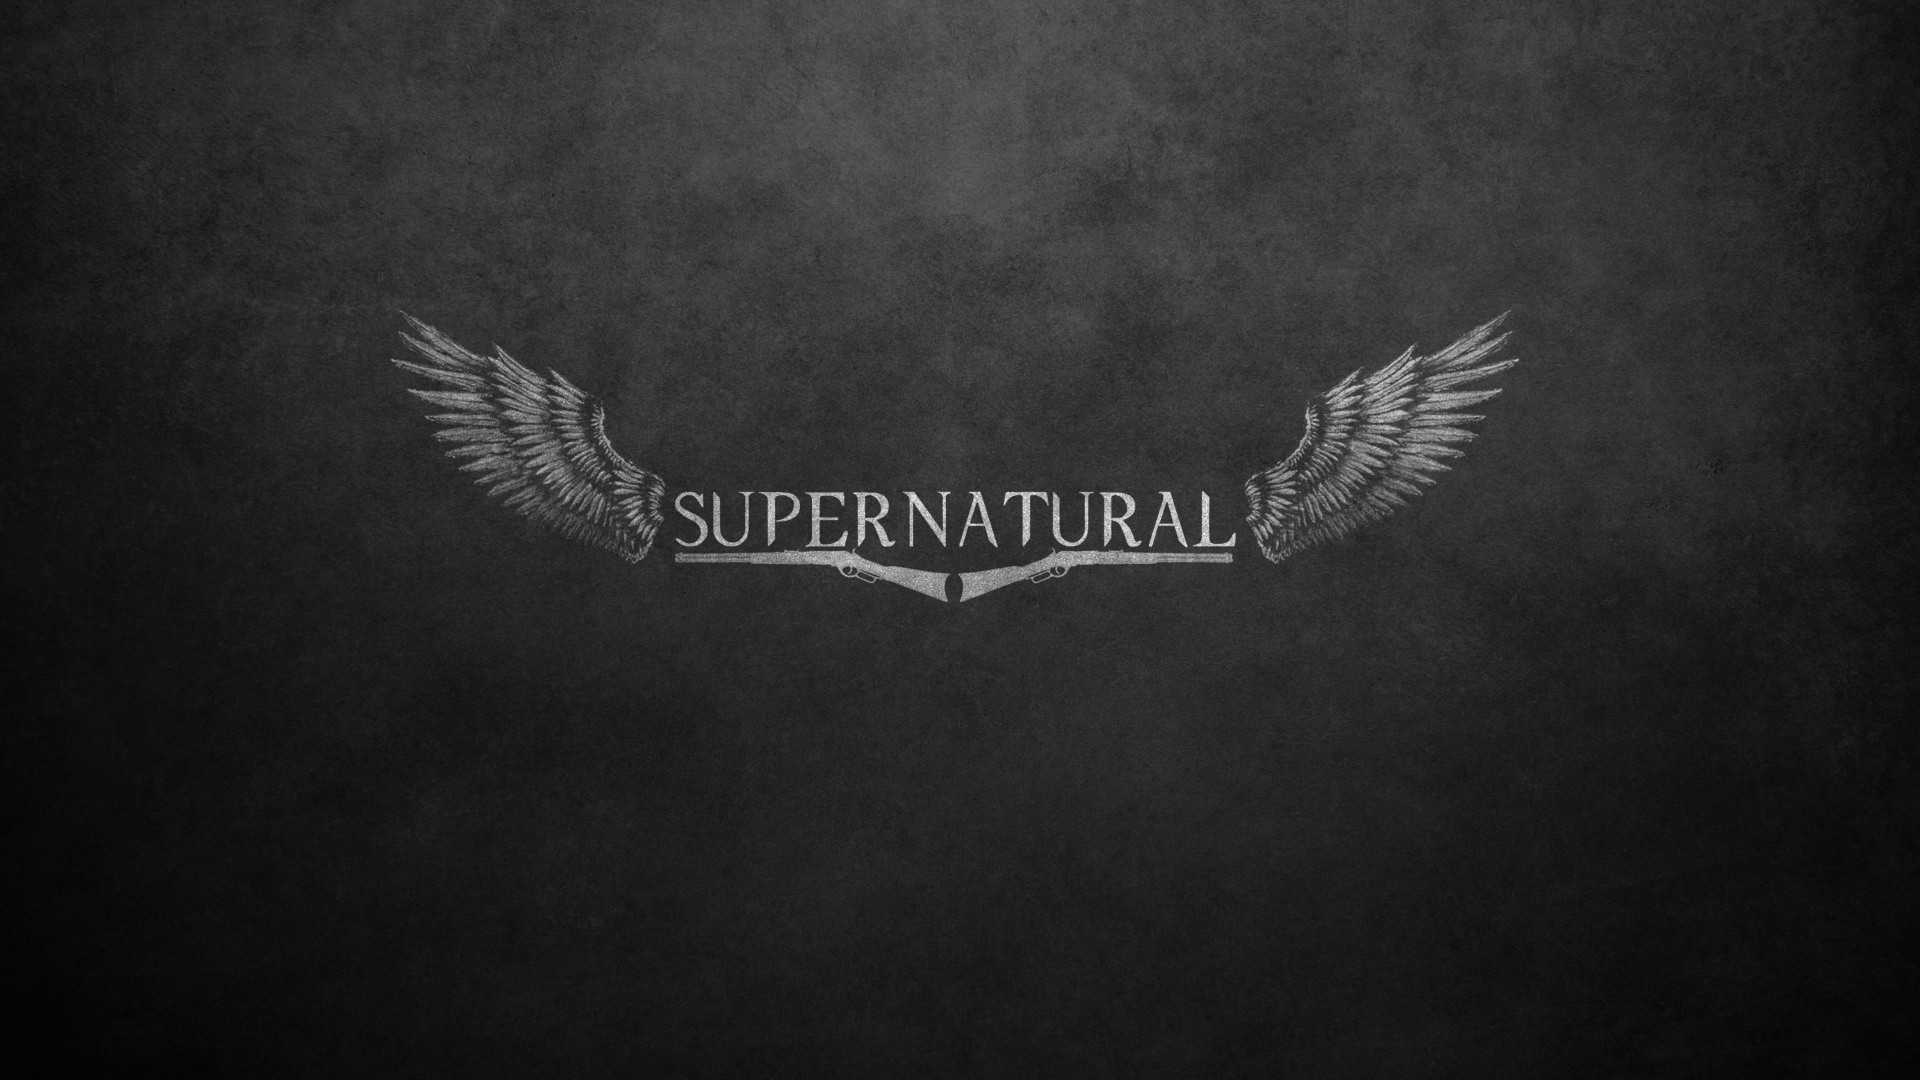 November 4, 2014 Cool Supernatural | Resolution: 1920x1080 px, Jacqulyn Viviani